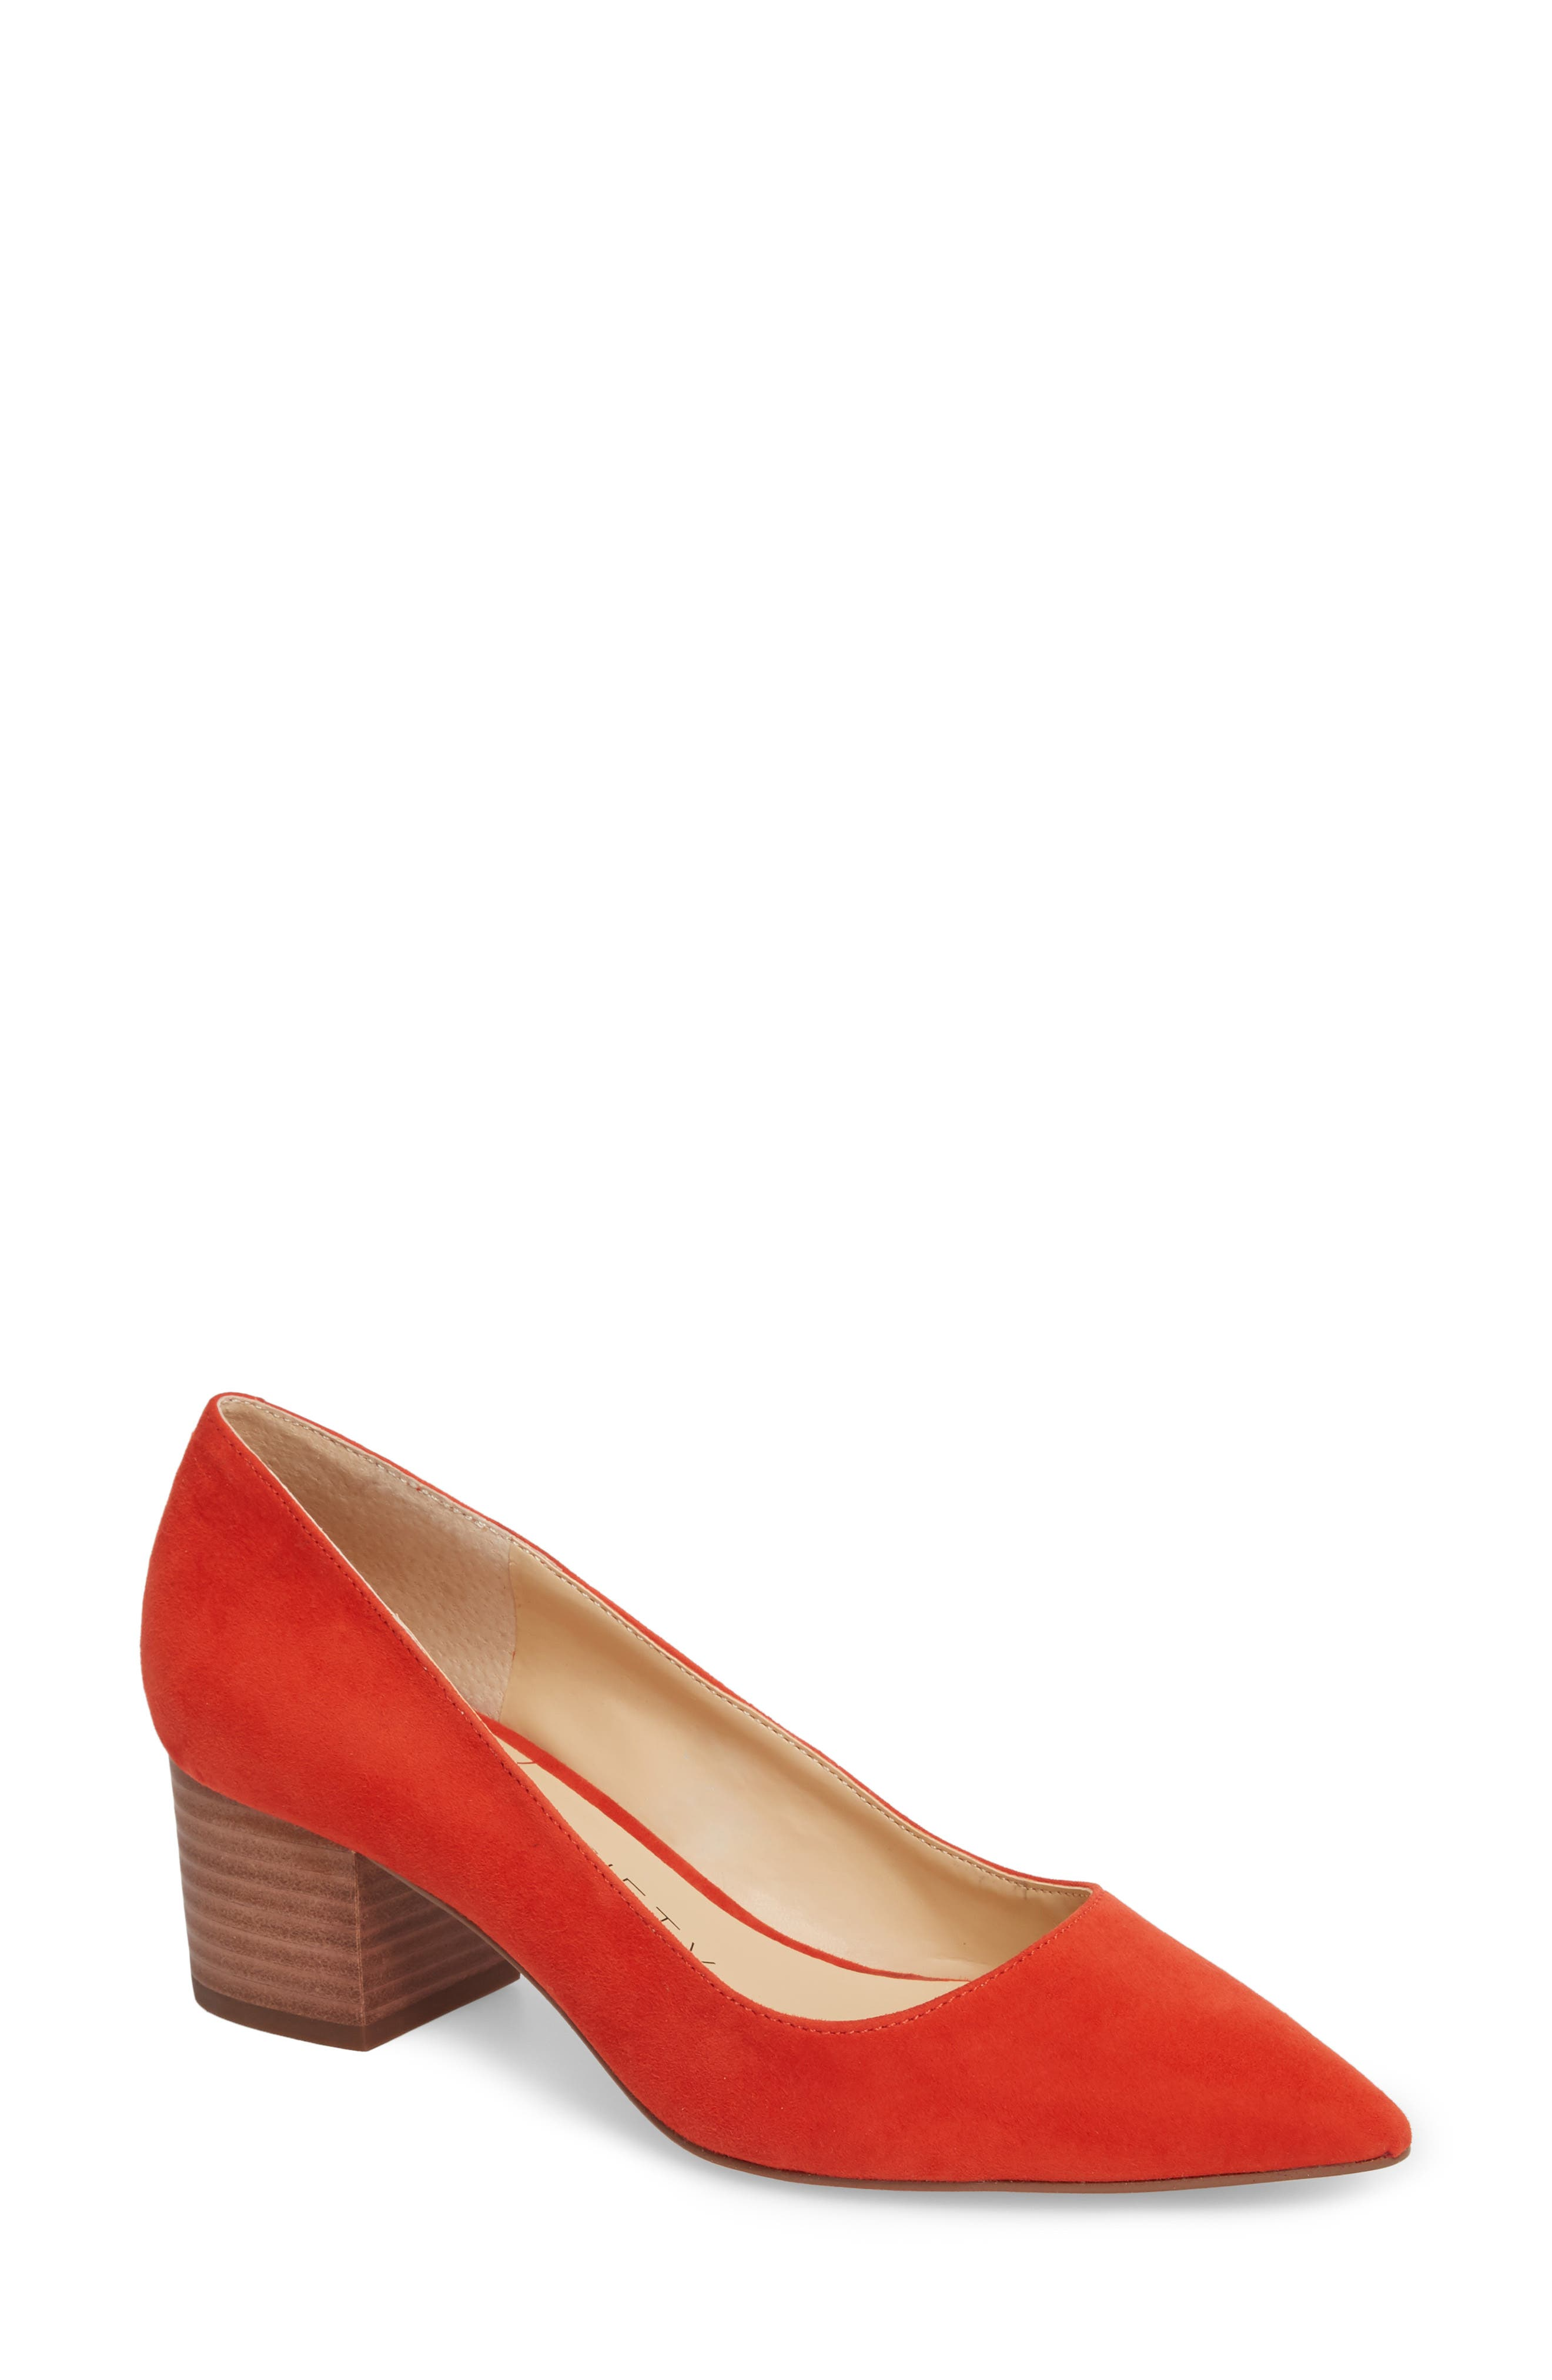 Andorra Genuine Calf Hair Pump,                             Main thumbnail 5, color,